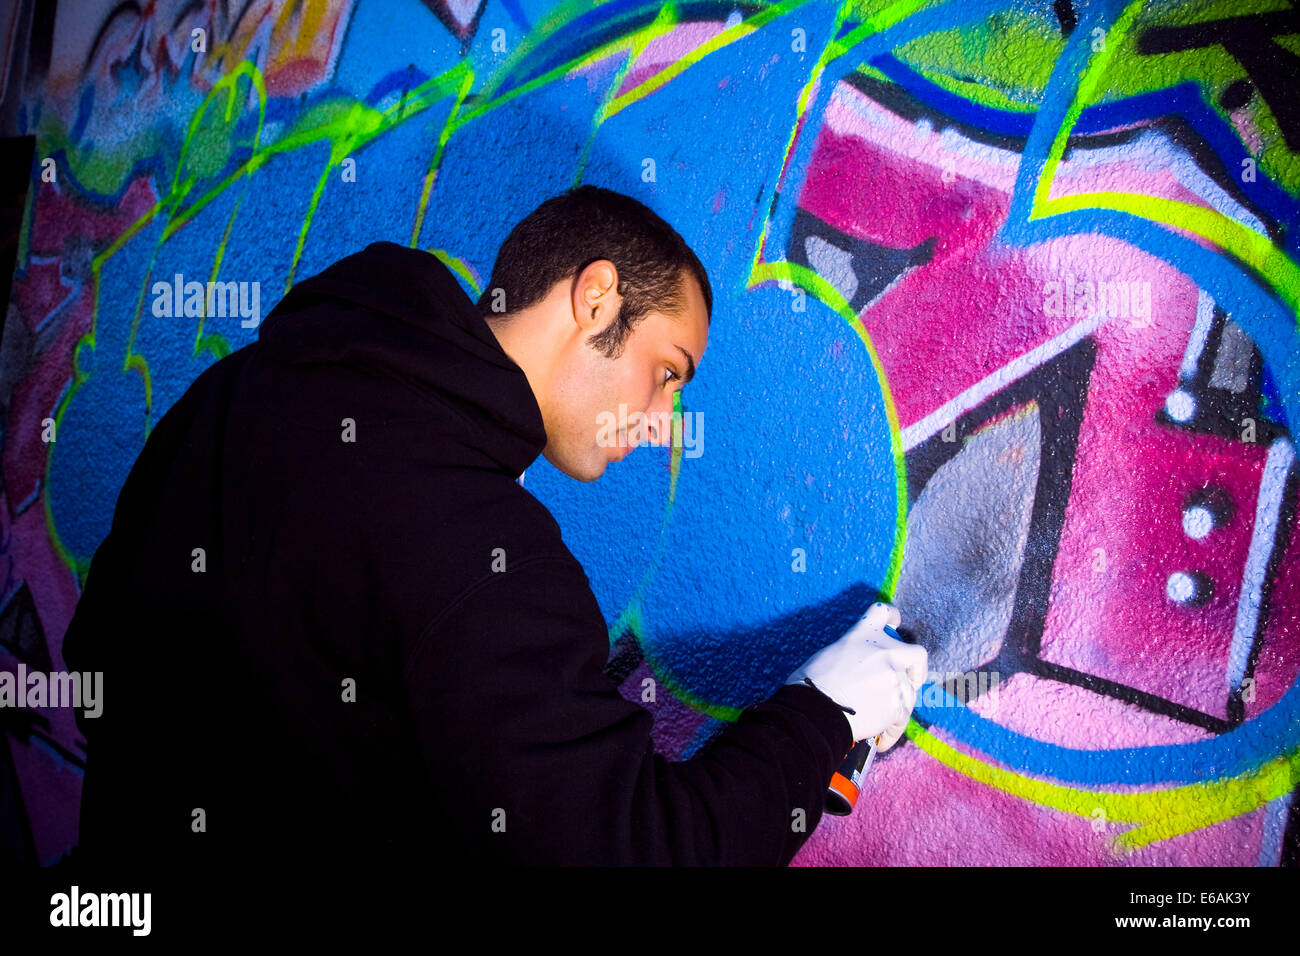 graffiti,youth culture,sprayer - Stock Image